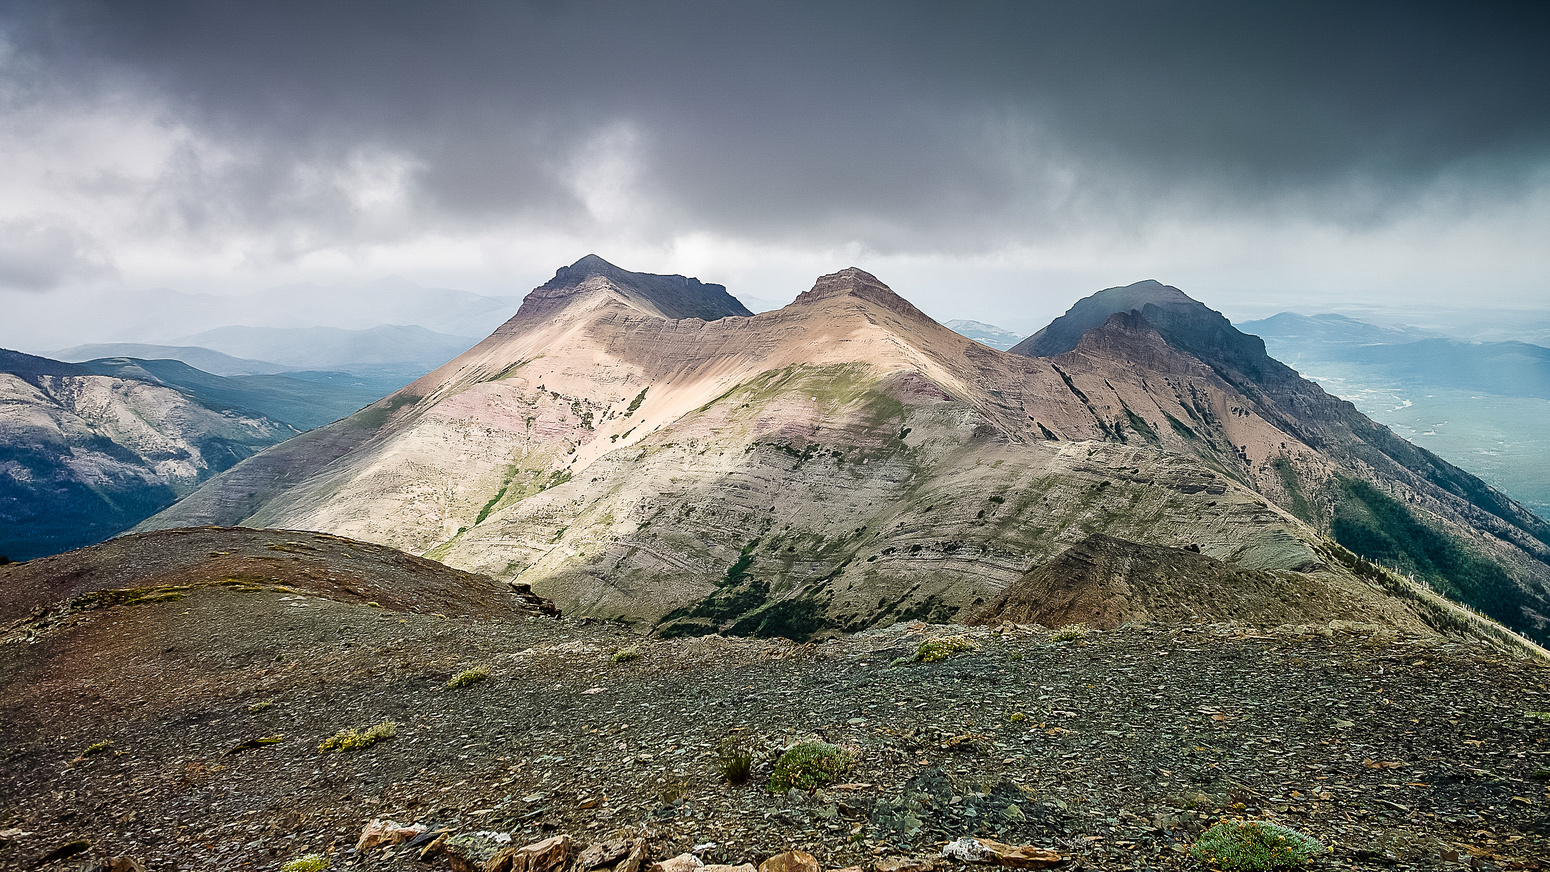 A great, moody shot of Syncline Mountain.